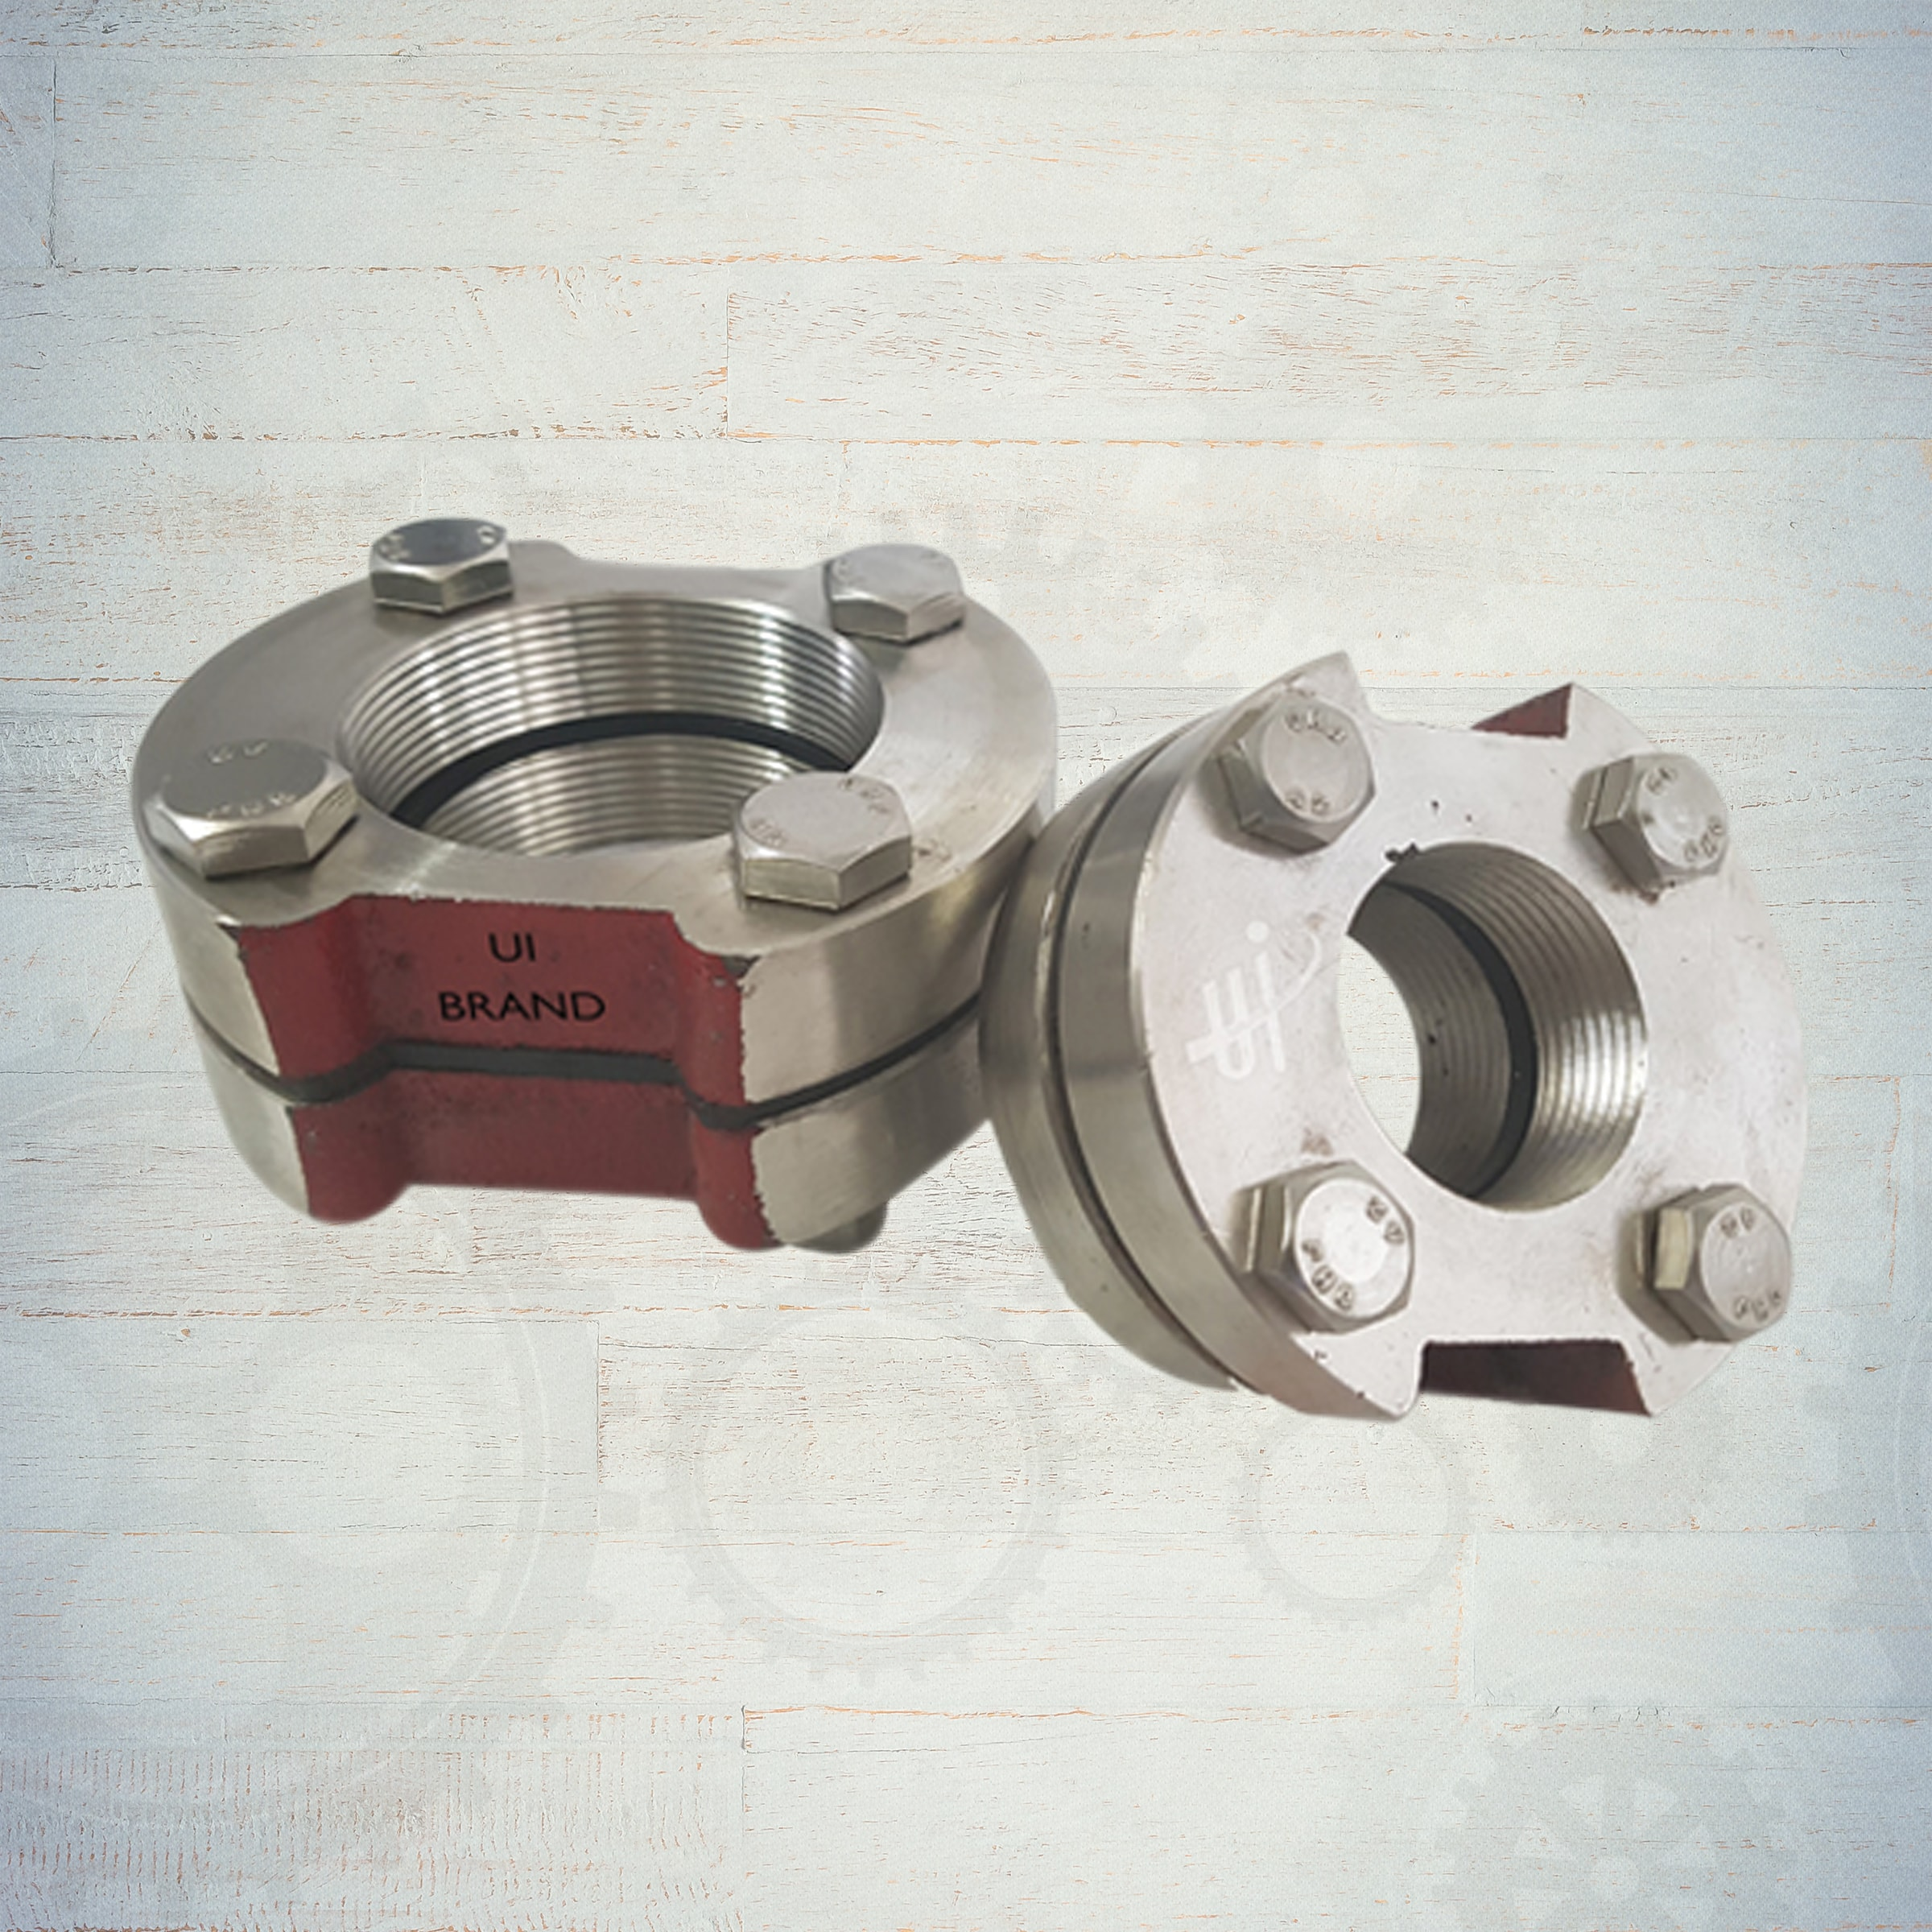 Stainless Steel Jota Manufacturer in India